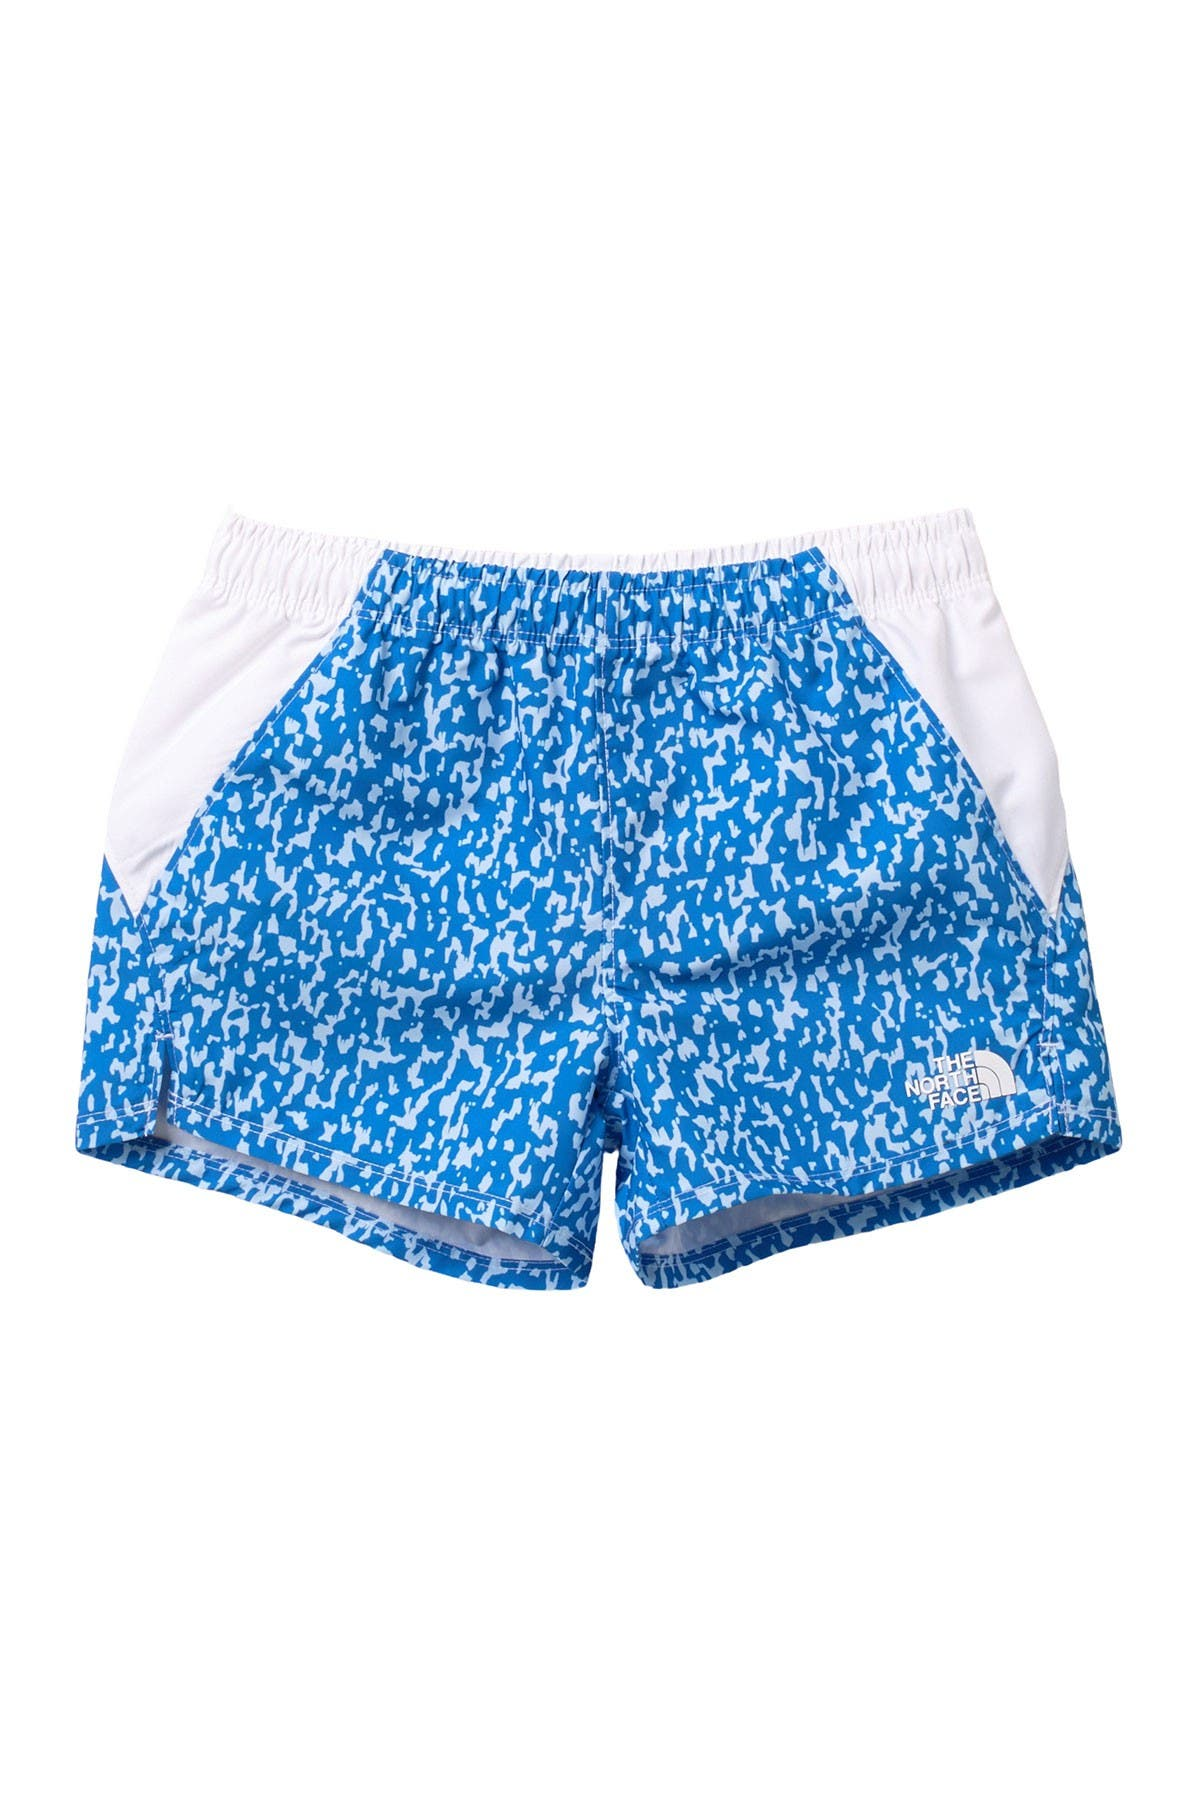 Image of The North Face Class V Water Shorts